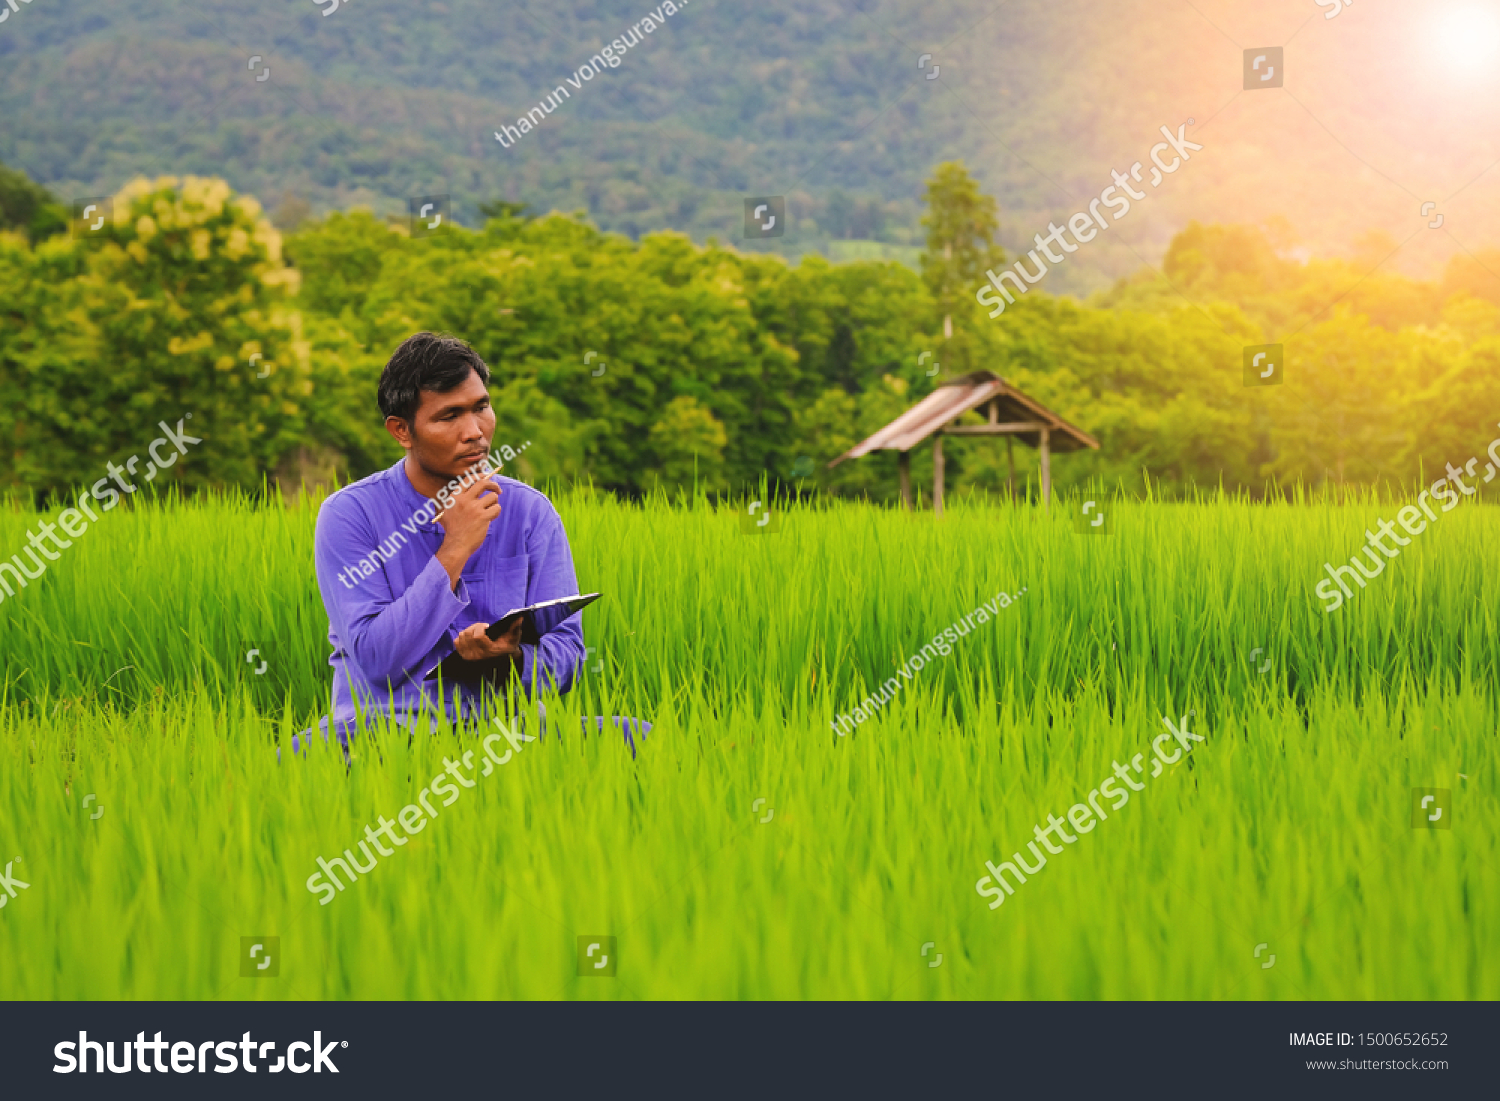 About Productivity farmer thinking calculate about productivity his stock photo